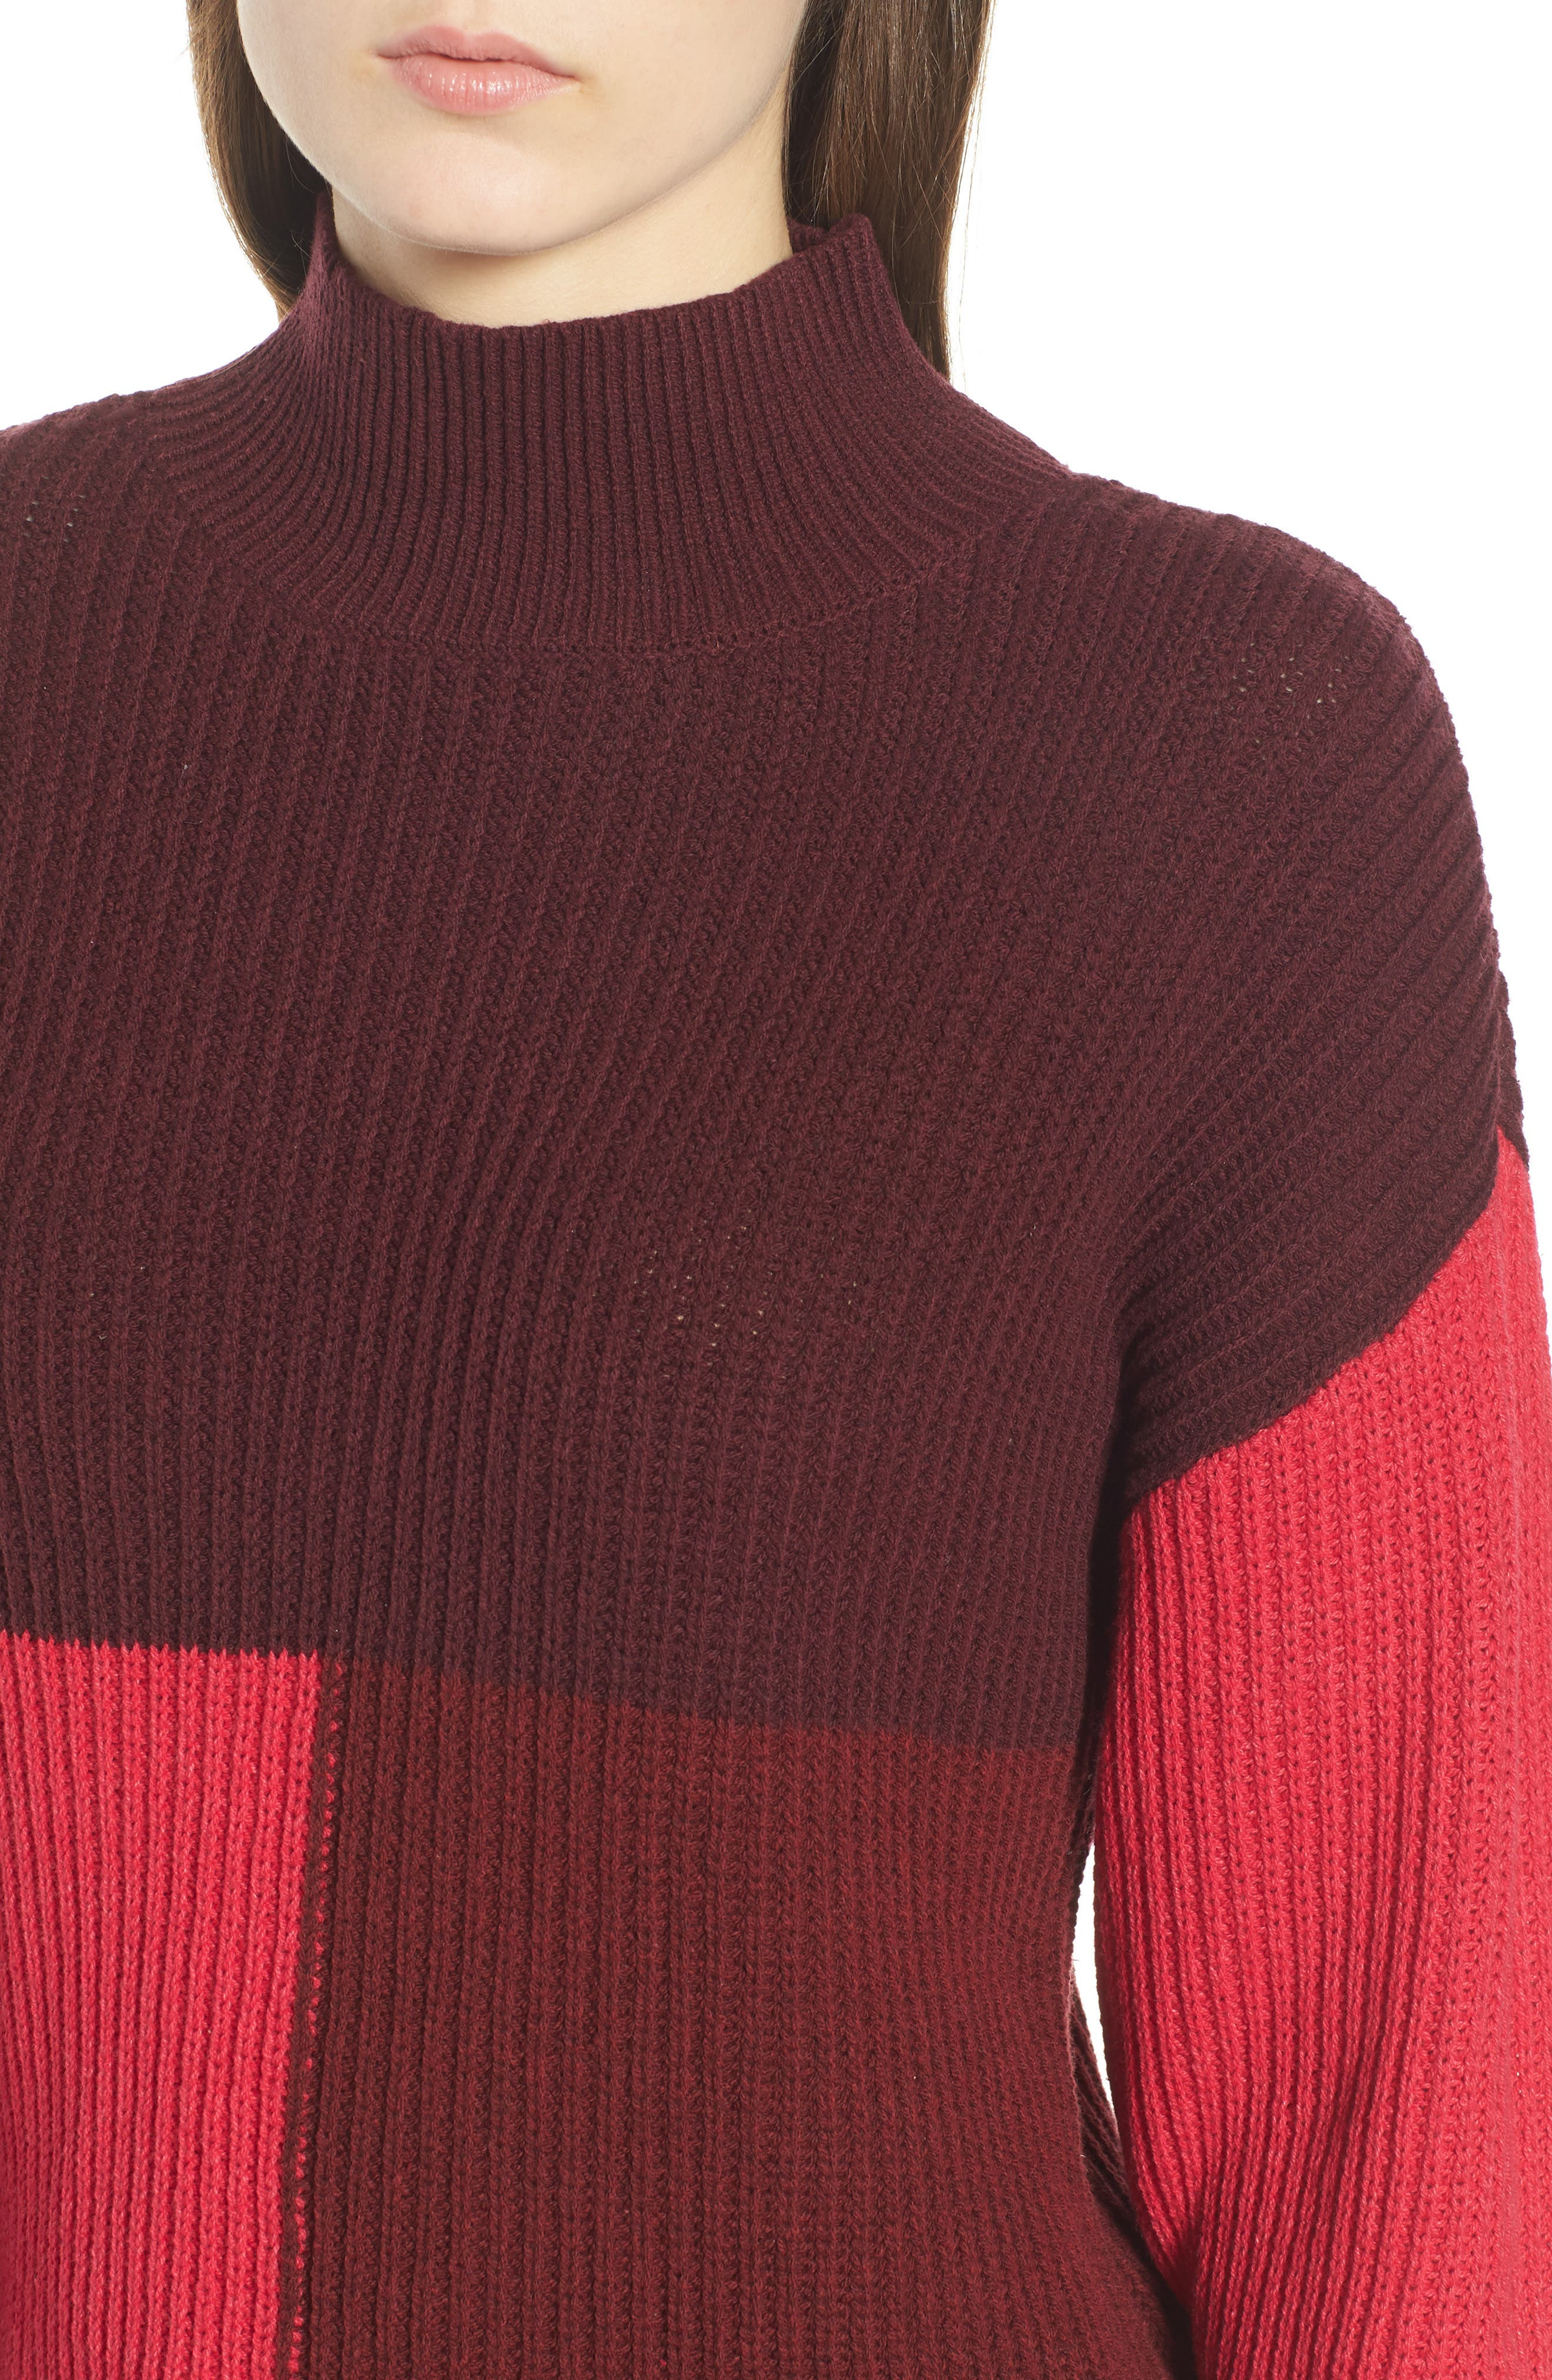 Mock Neck Colorblock Sweater,                             Alternate thumbnail 4, color,                             Red Rumba Colorblock